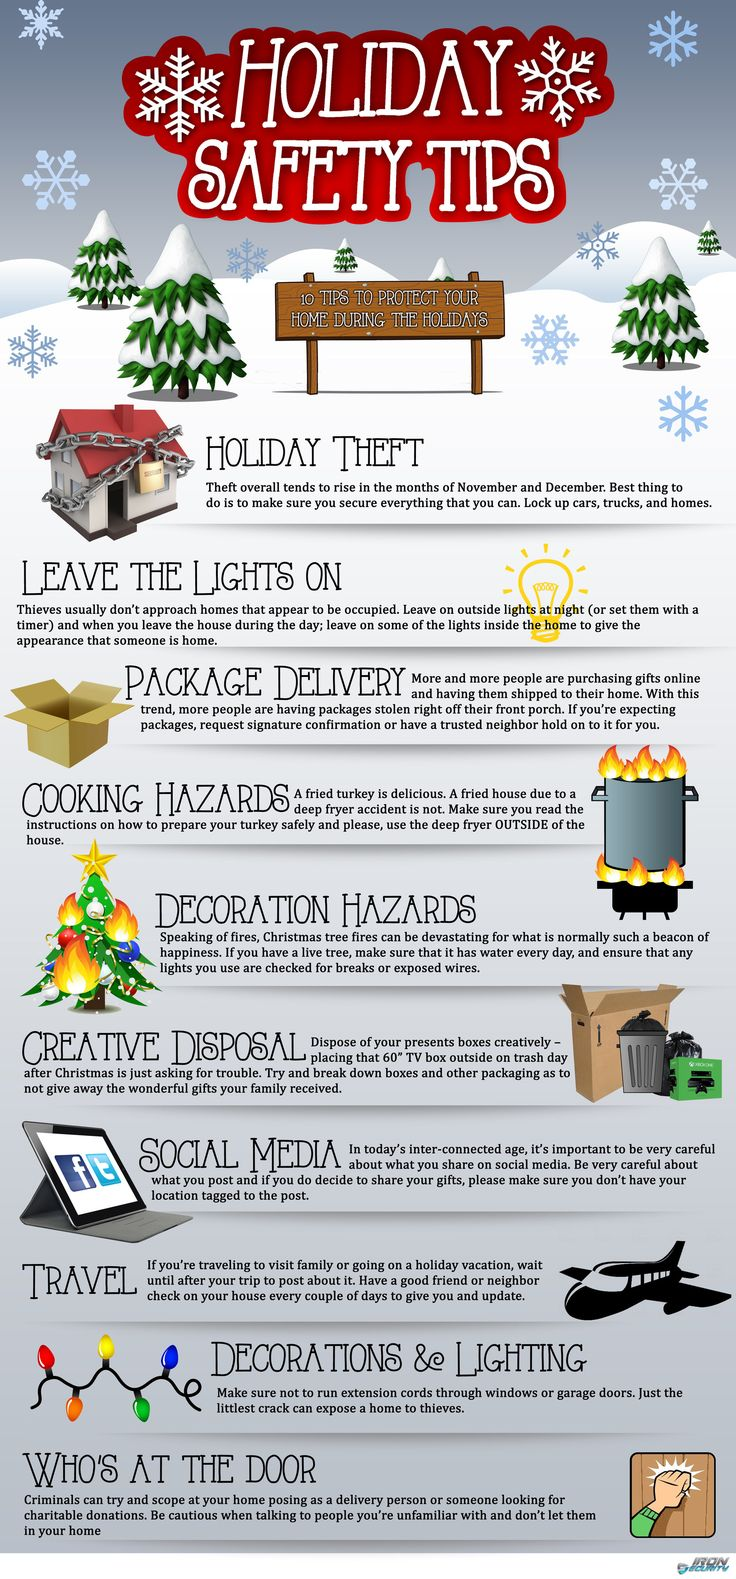 How to Maintain Home Safety this Holiday #Infographic #Christmas